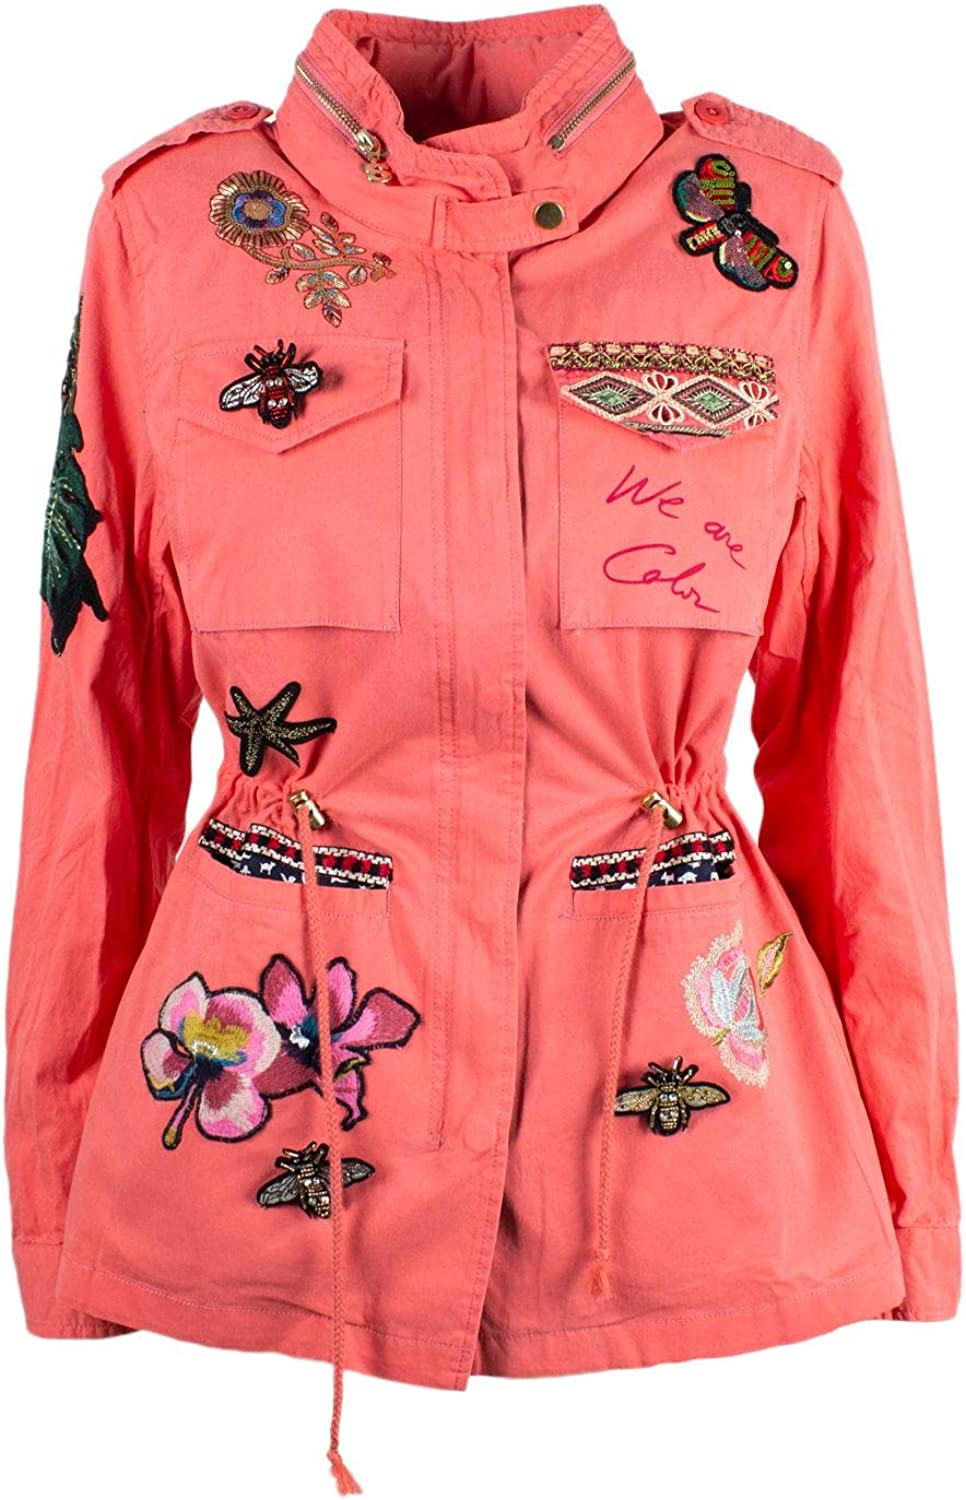 Desigual Women's 19SWEW46PINK Pink Polyester Outerwear Jacket